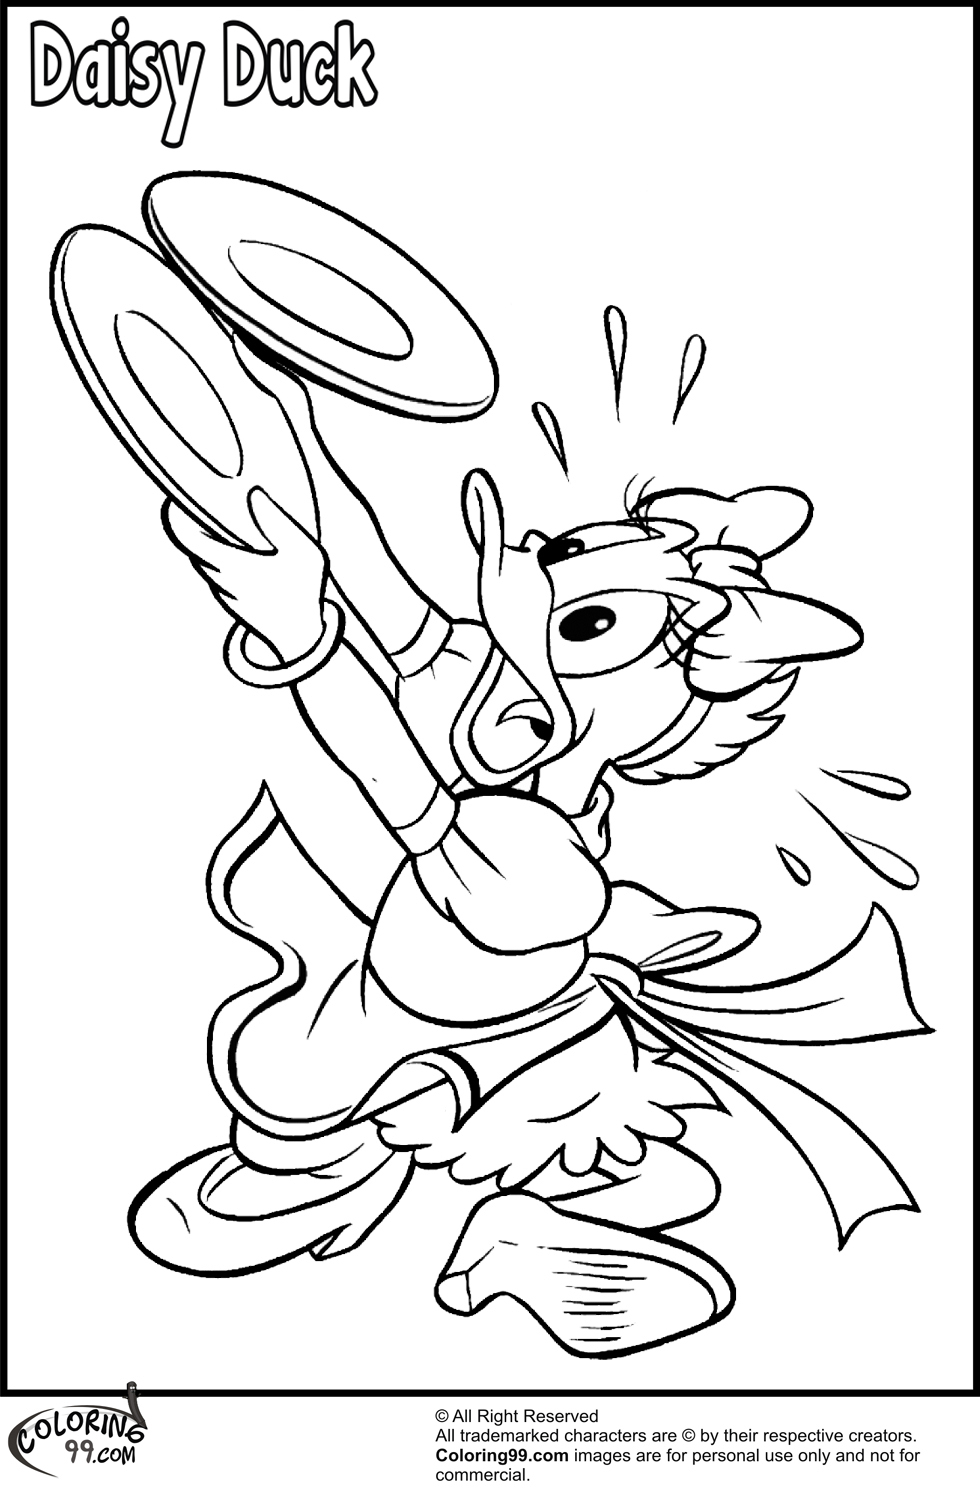 daisy the duck coloring pages daisy duck coloring pages 3 disneyclipscom duck pages coloring daisy the